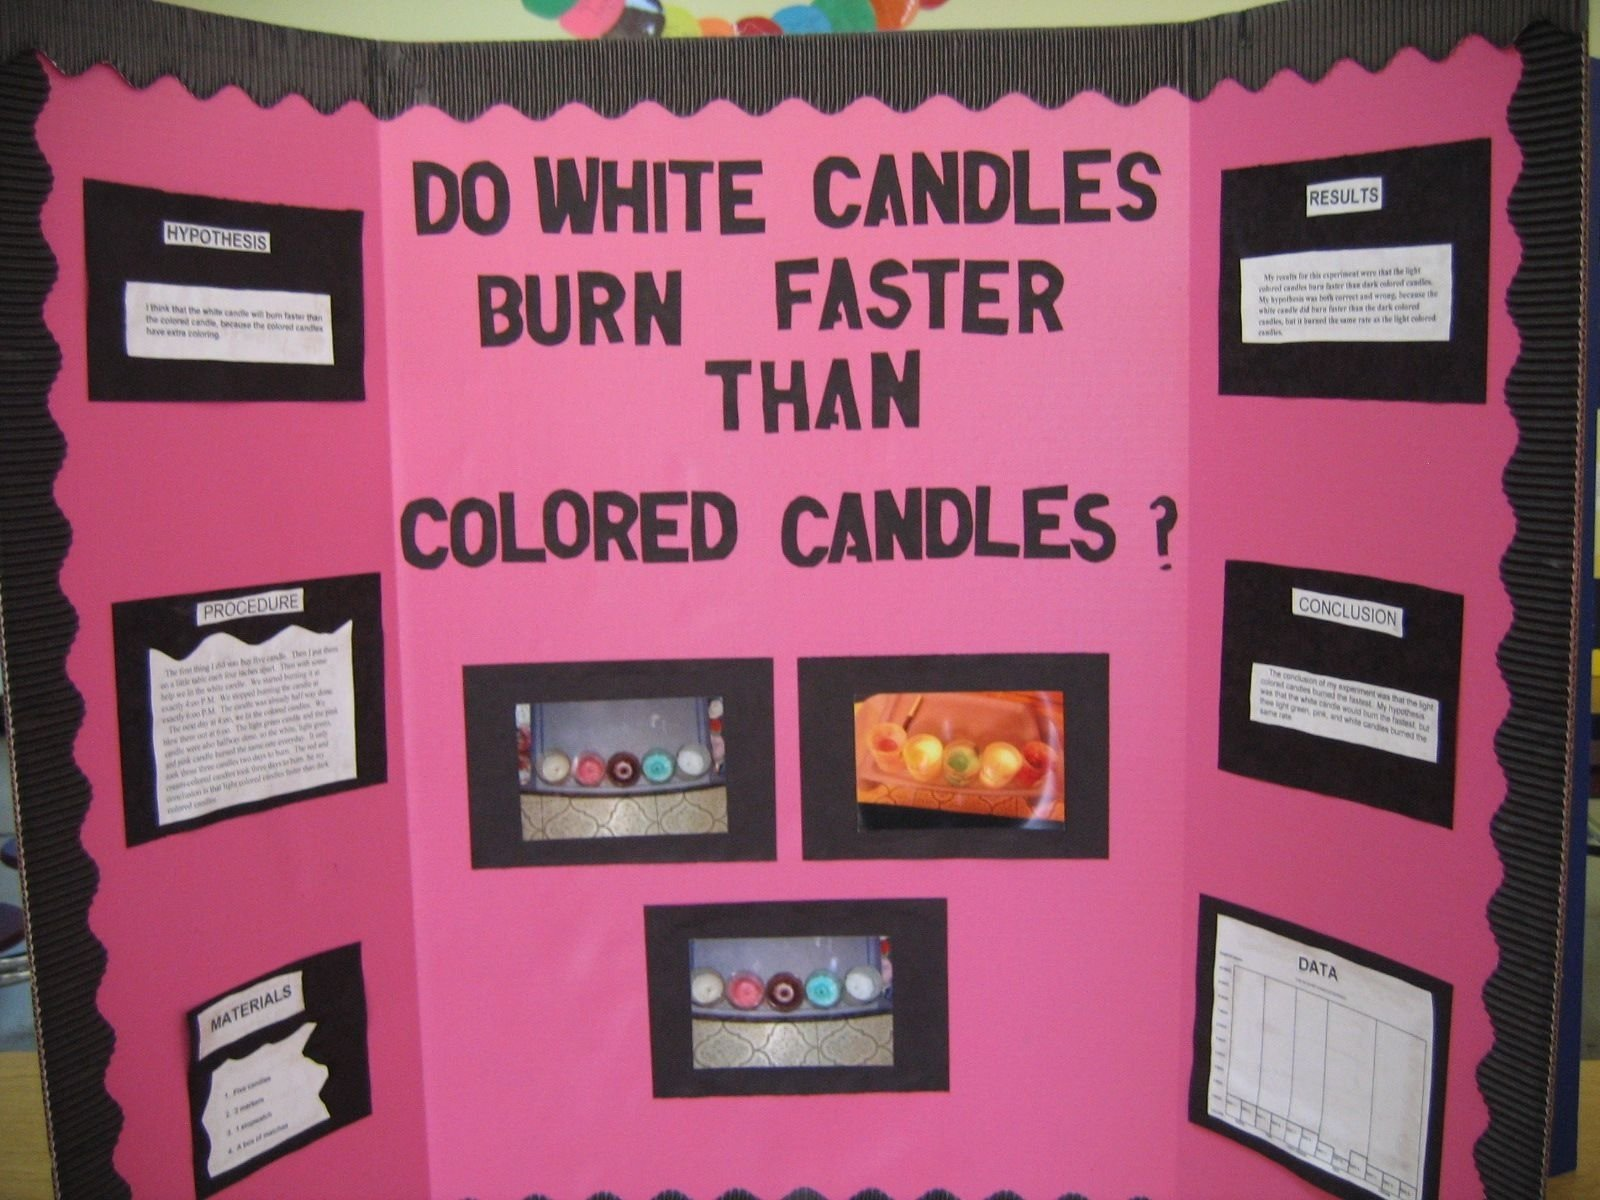 10 Stylish Middle School Science Fair Projects Ideas 8Th Grade science fair projects for 8th grade google search science fair 21 2021